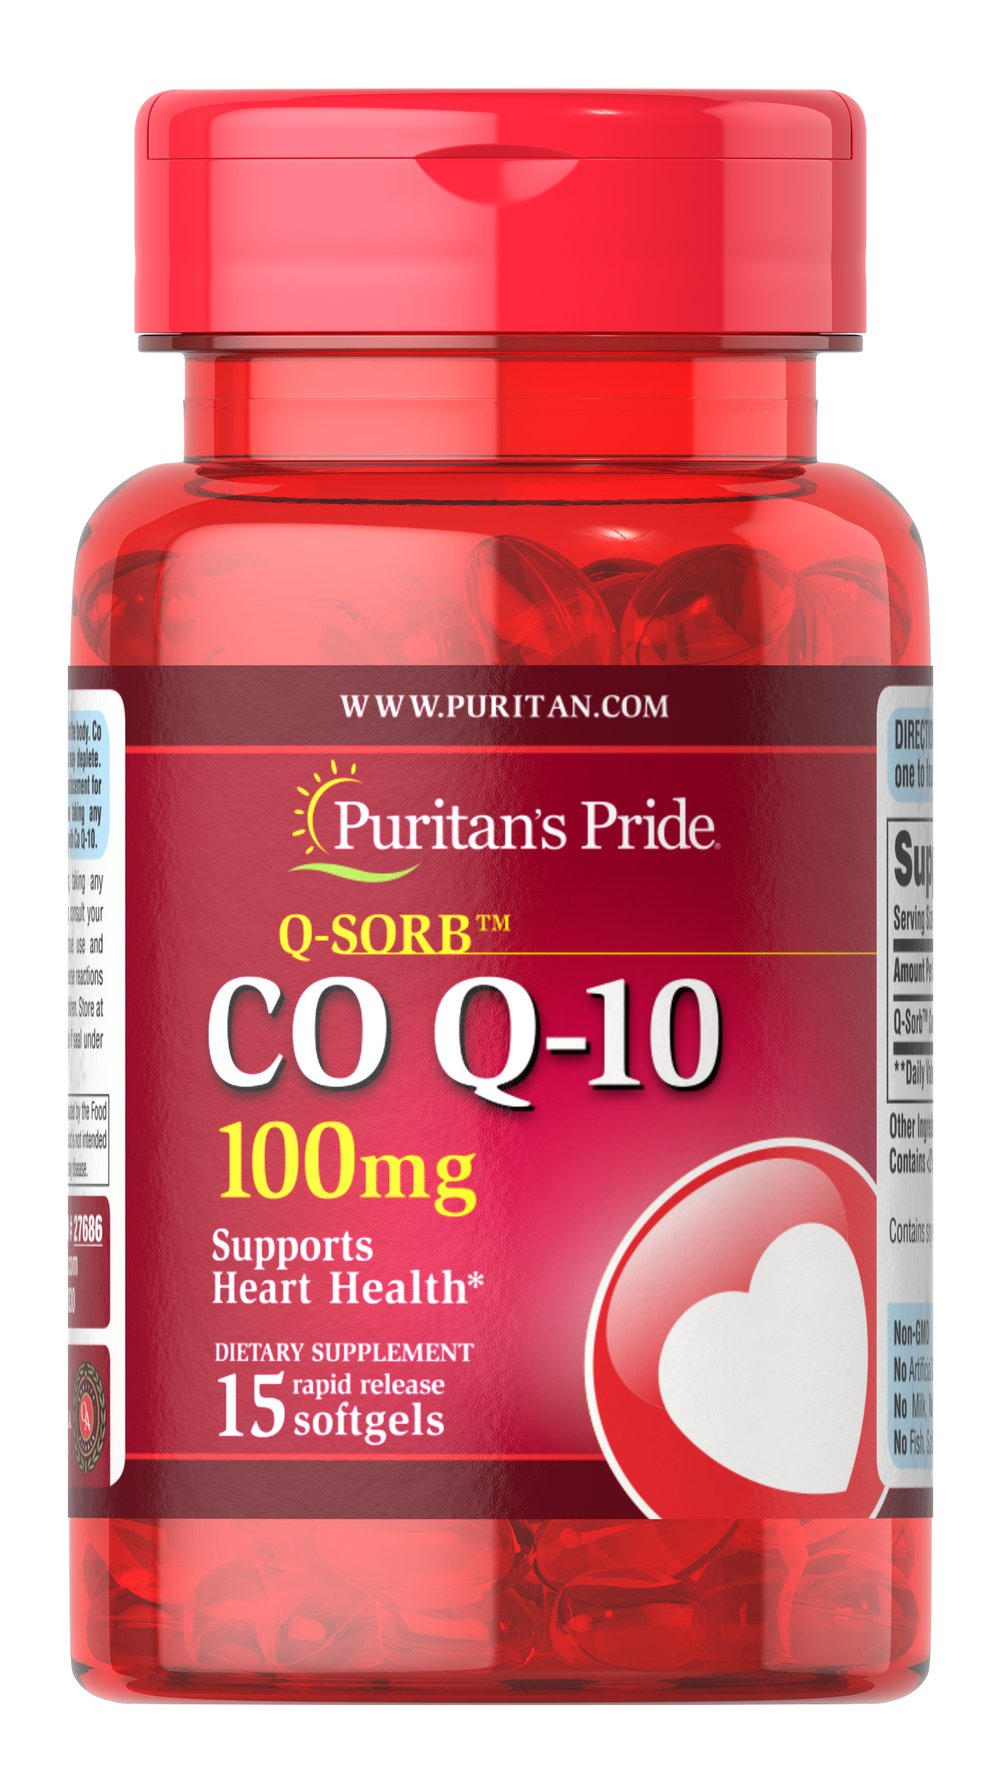 "Co Q-10 100 mg <br /><ul><li>Contributes to your heart and cardiovascular wellness**</li><li>Helps support healthy blood pressure levels already within a normal range**</li><li>Promotes energy production within your heart, brain and muscles**</li></ul>  <p style=""margin:0in;margin-bottom:.0001pt;"">Made with a natural, highly bioavailable form of Co Q 10 — Q-Sorb.™Important for Statin medication users++ — taking Q-Sorb™ Co Q 10"